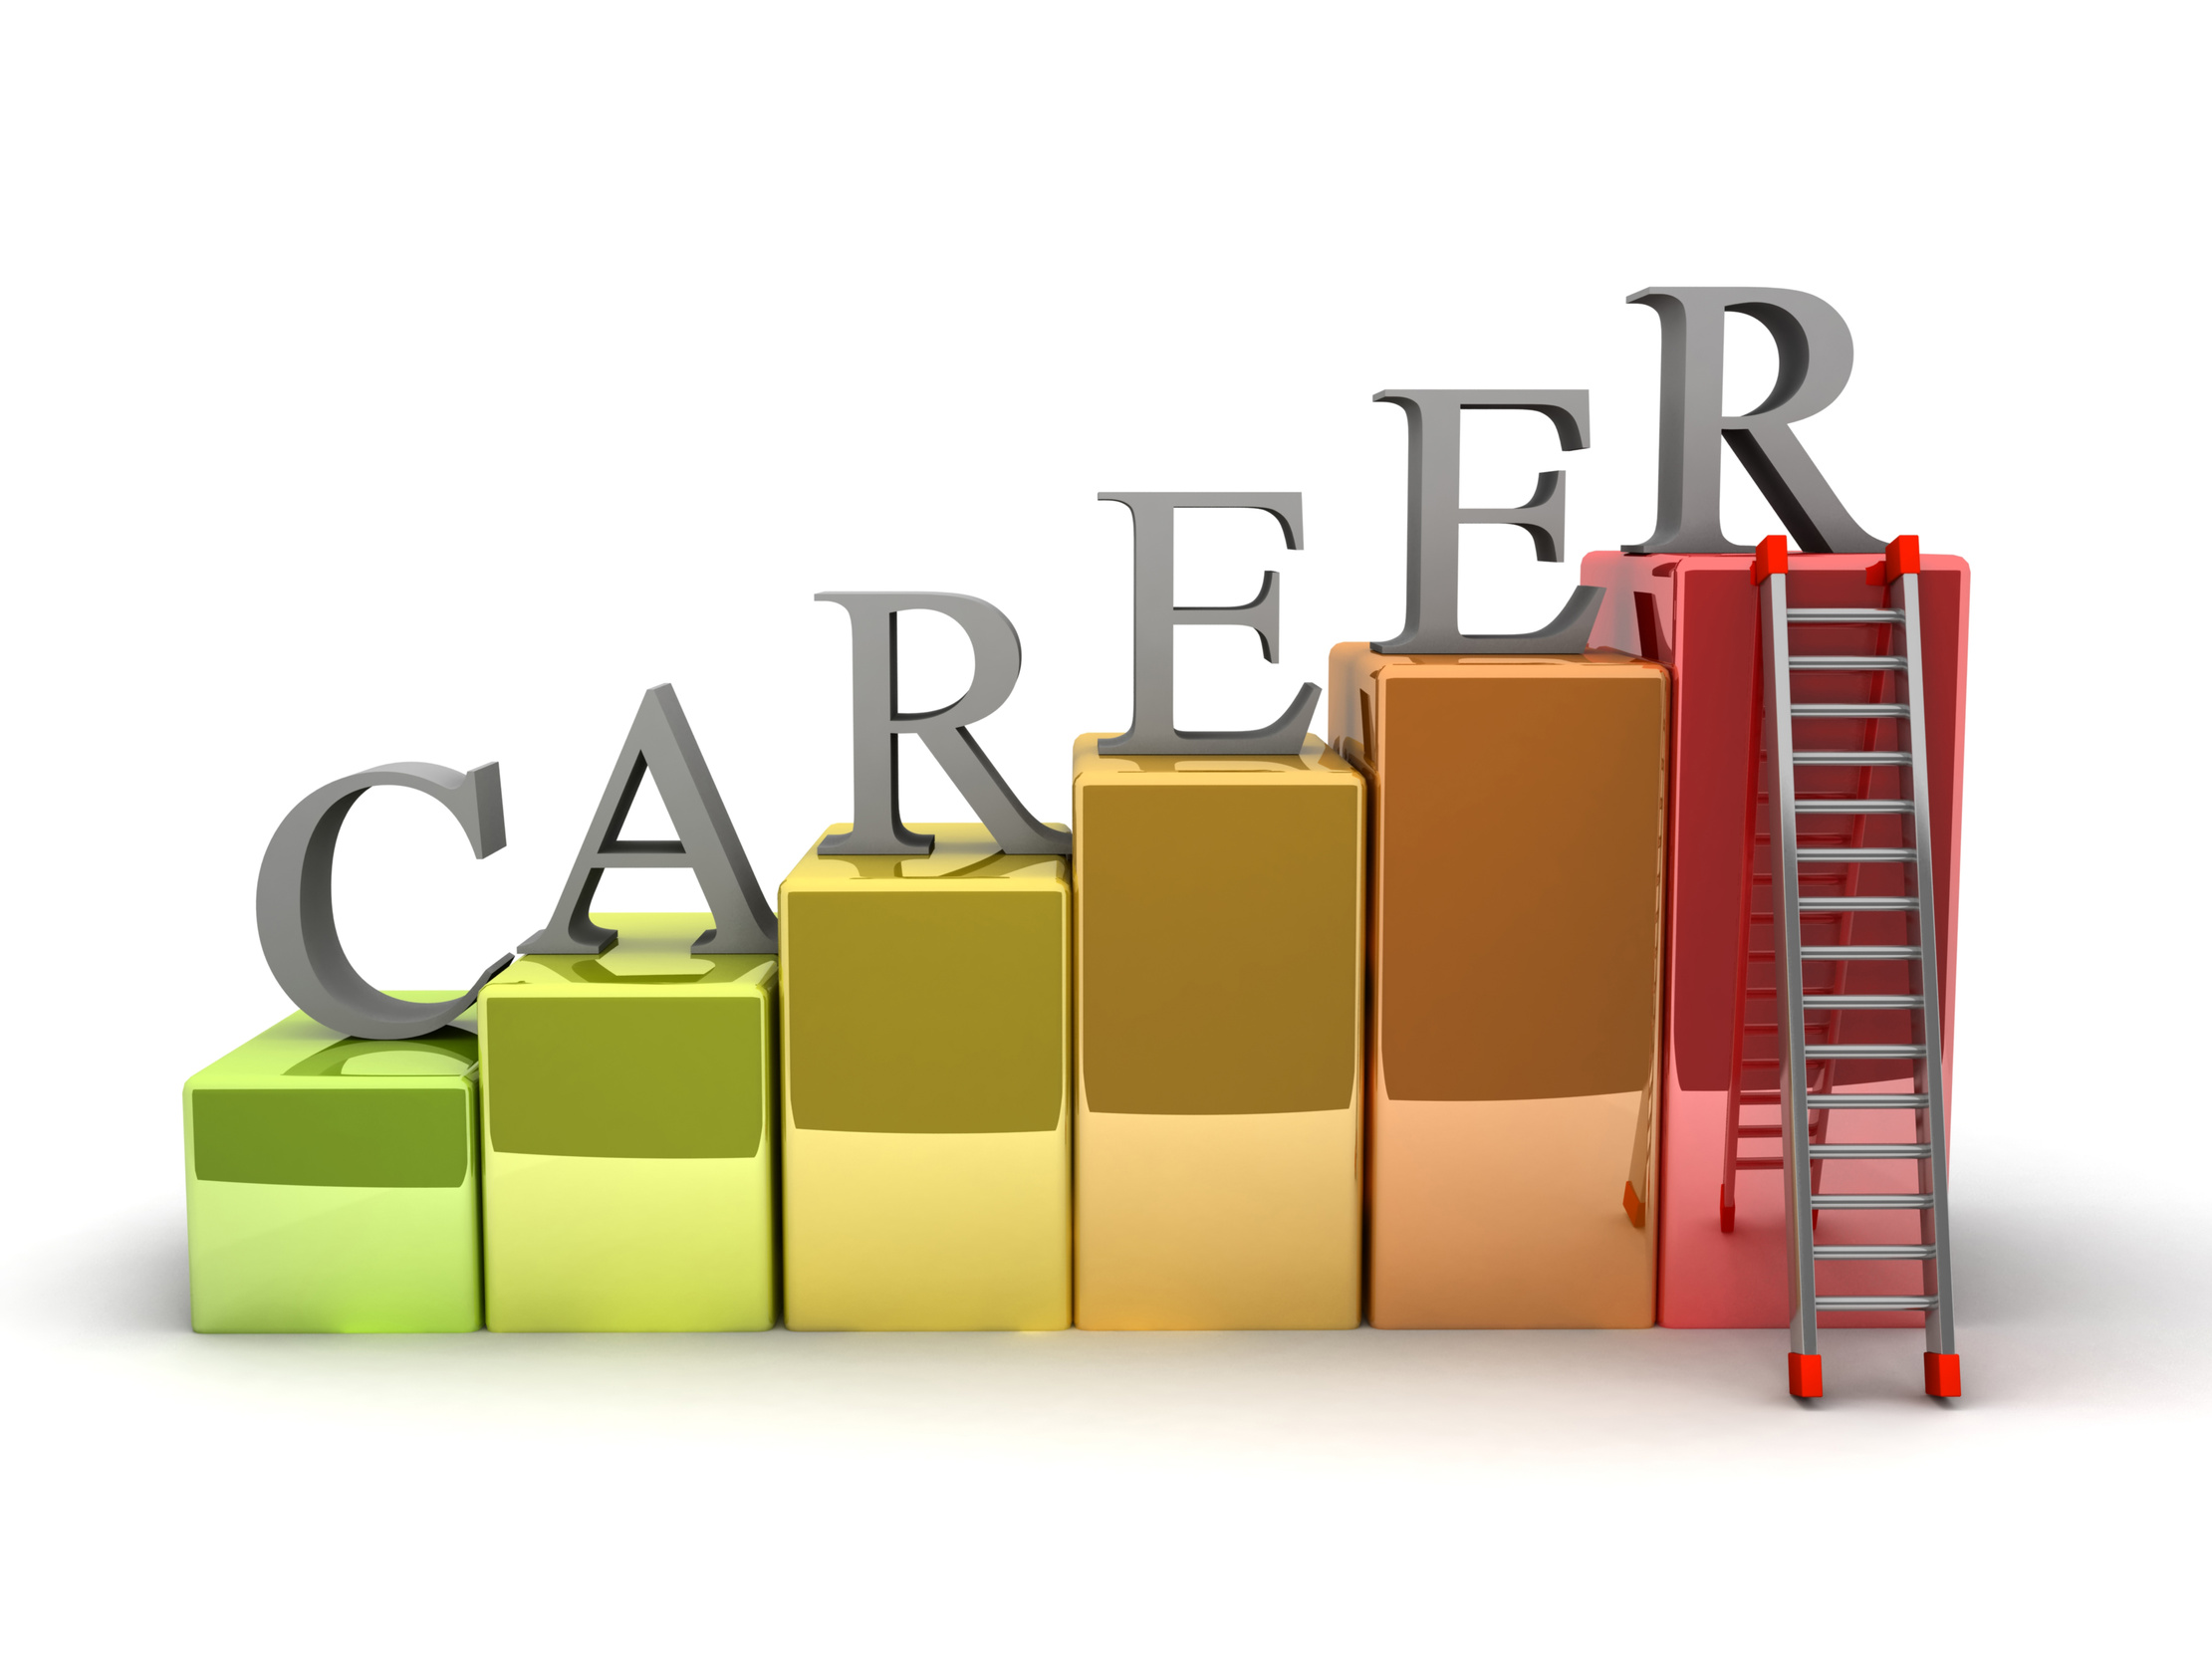 Free Images Of Career, Download Free Clip Art, Free Clip Art.